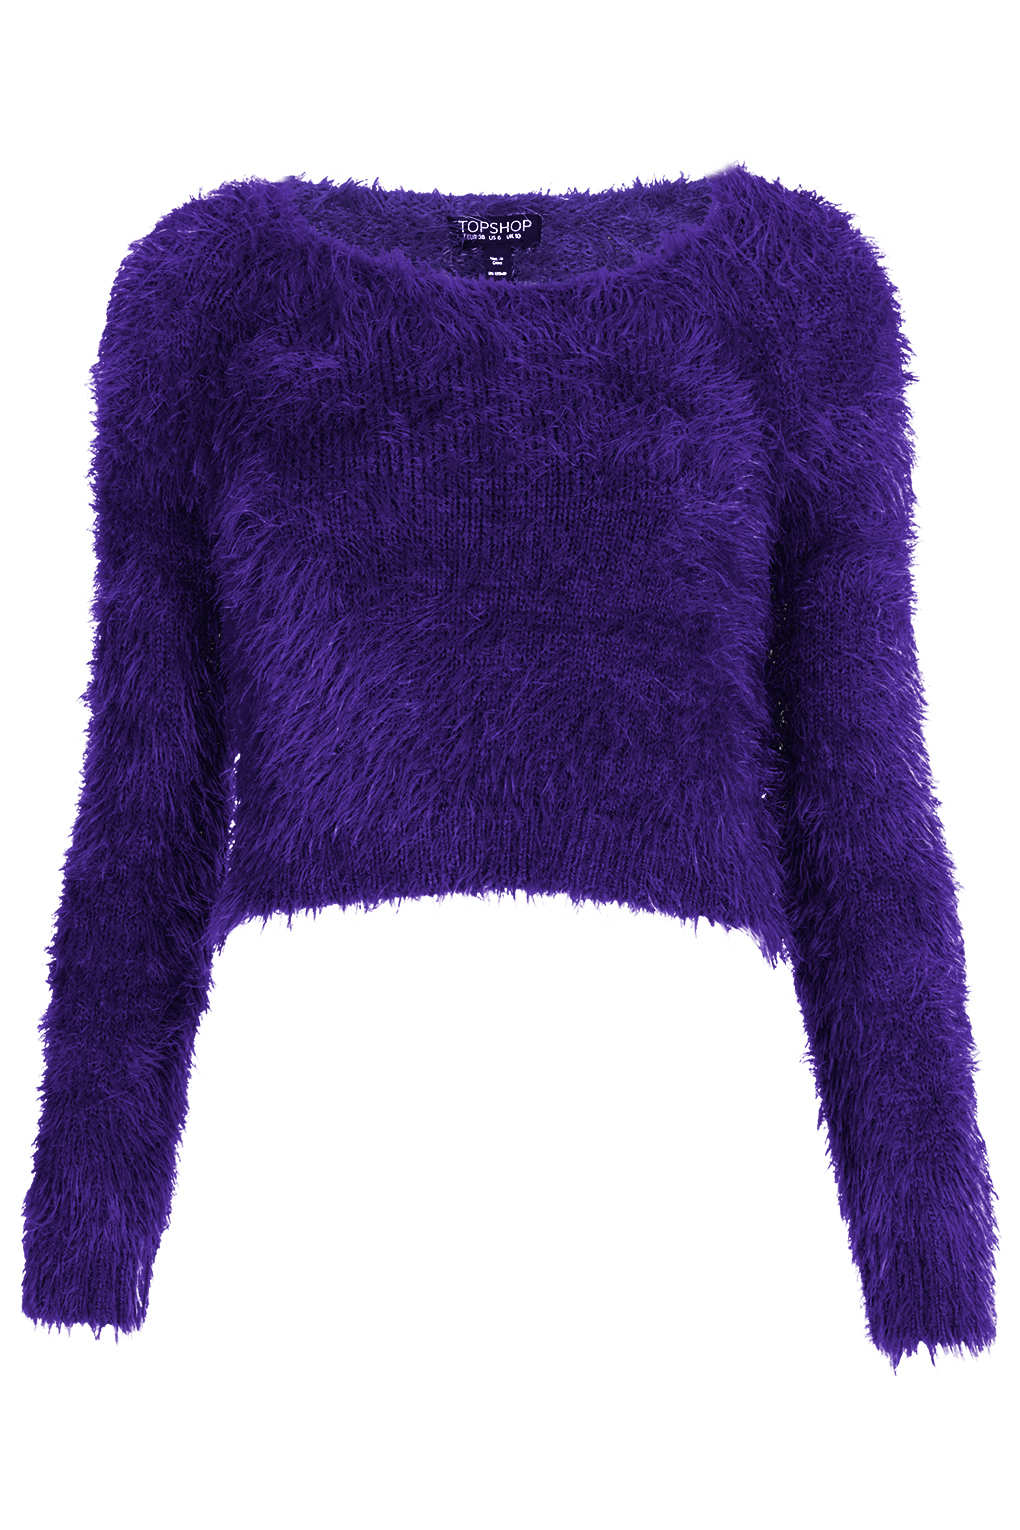 Knitting Pattern Fluffy Jumper : Topshop Knitted Fluffy Crop Jumper in Purple Lyst